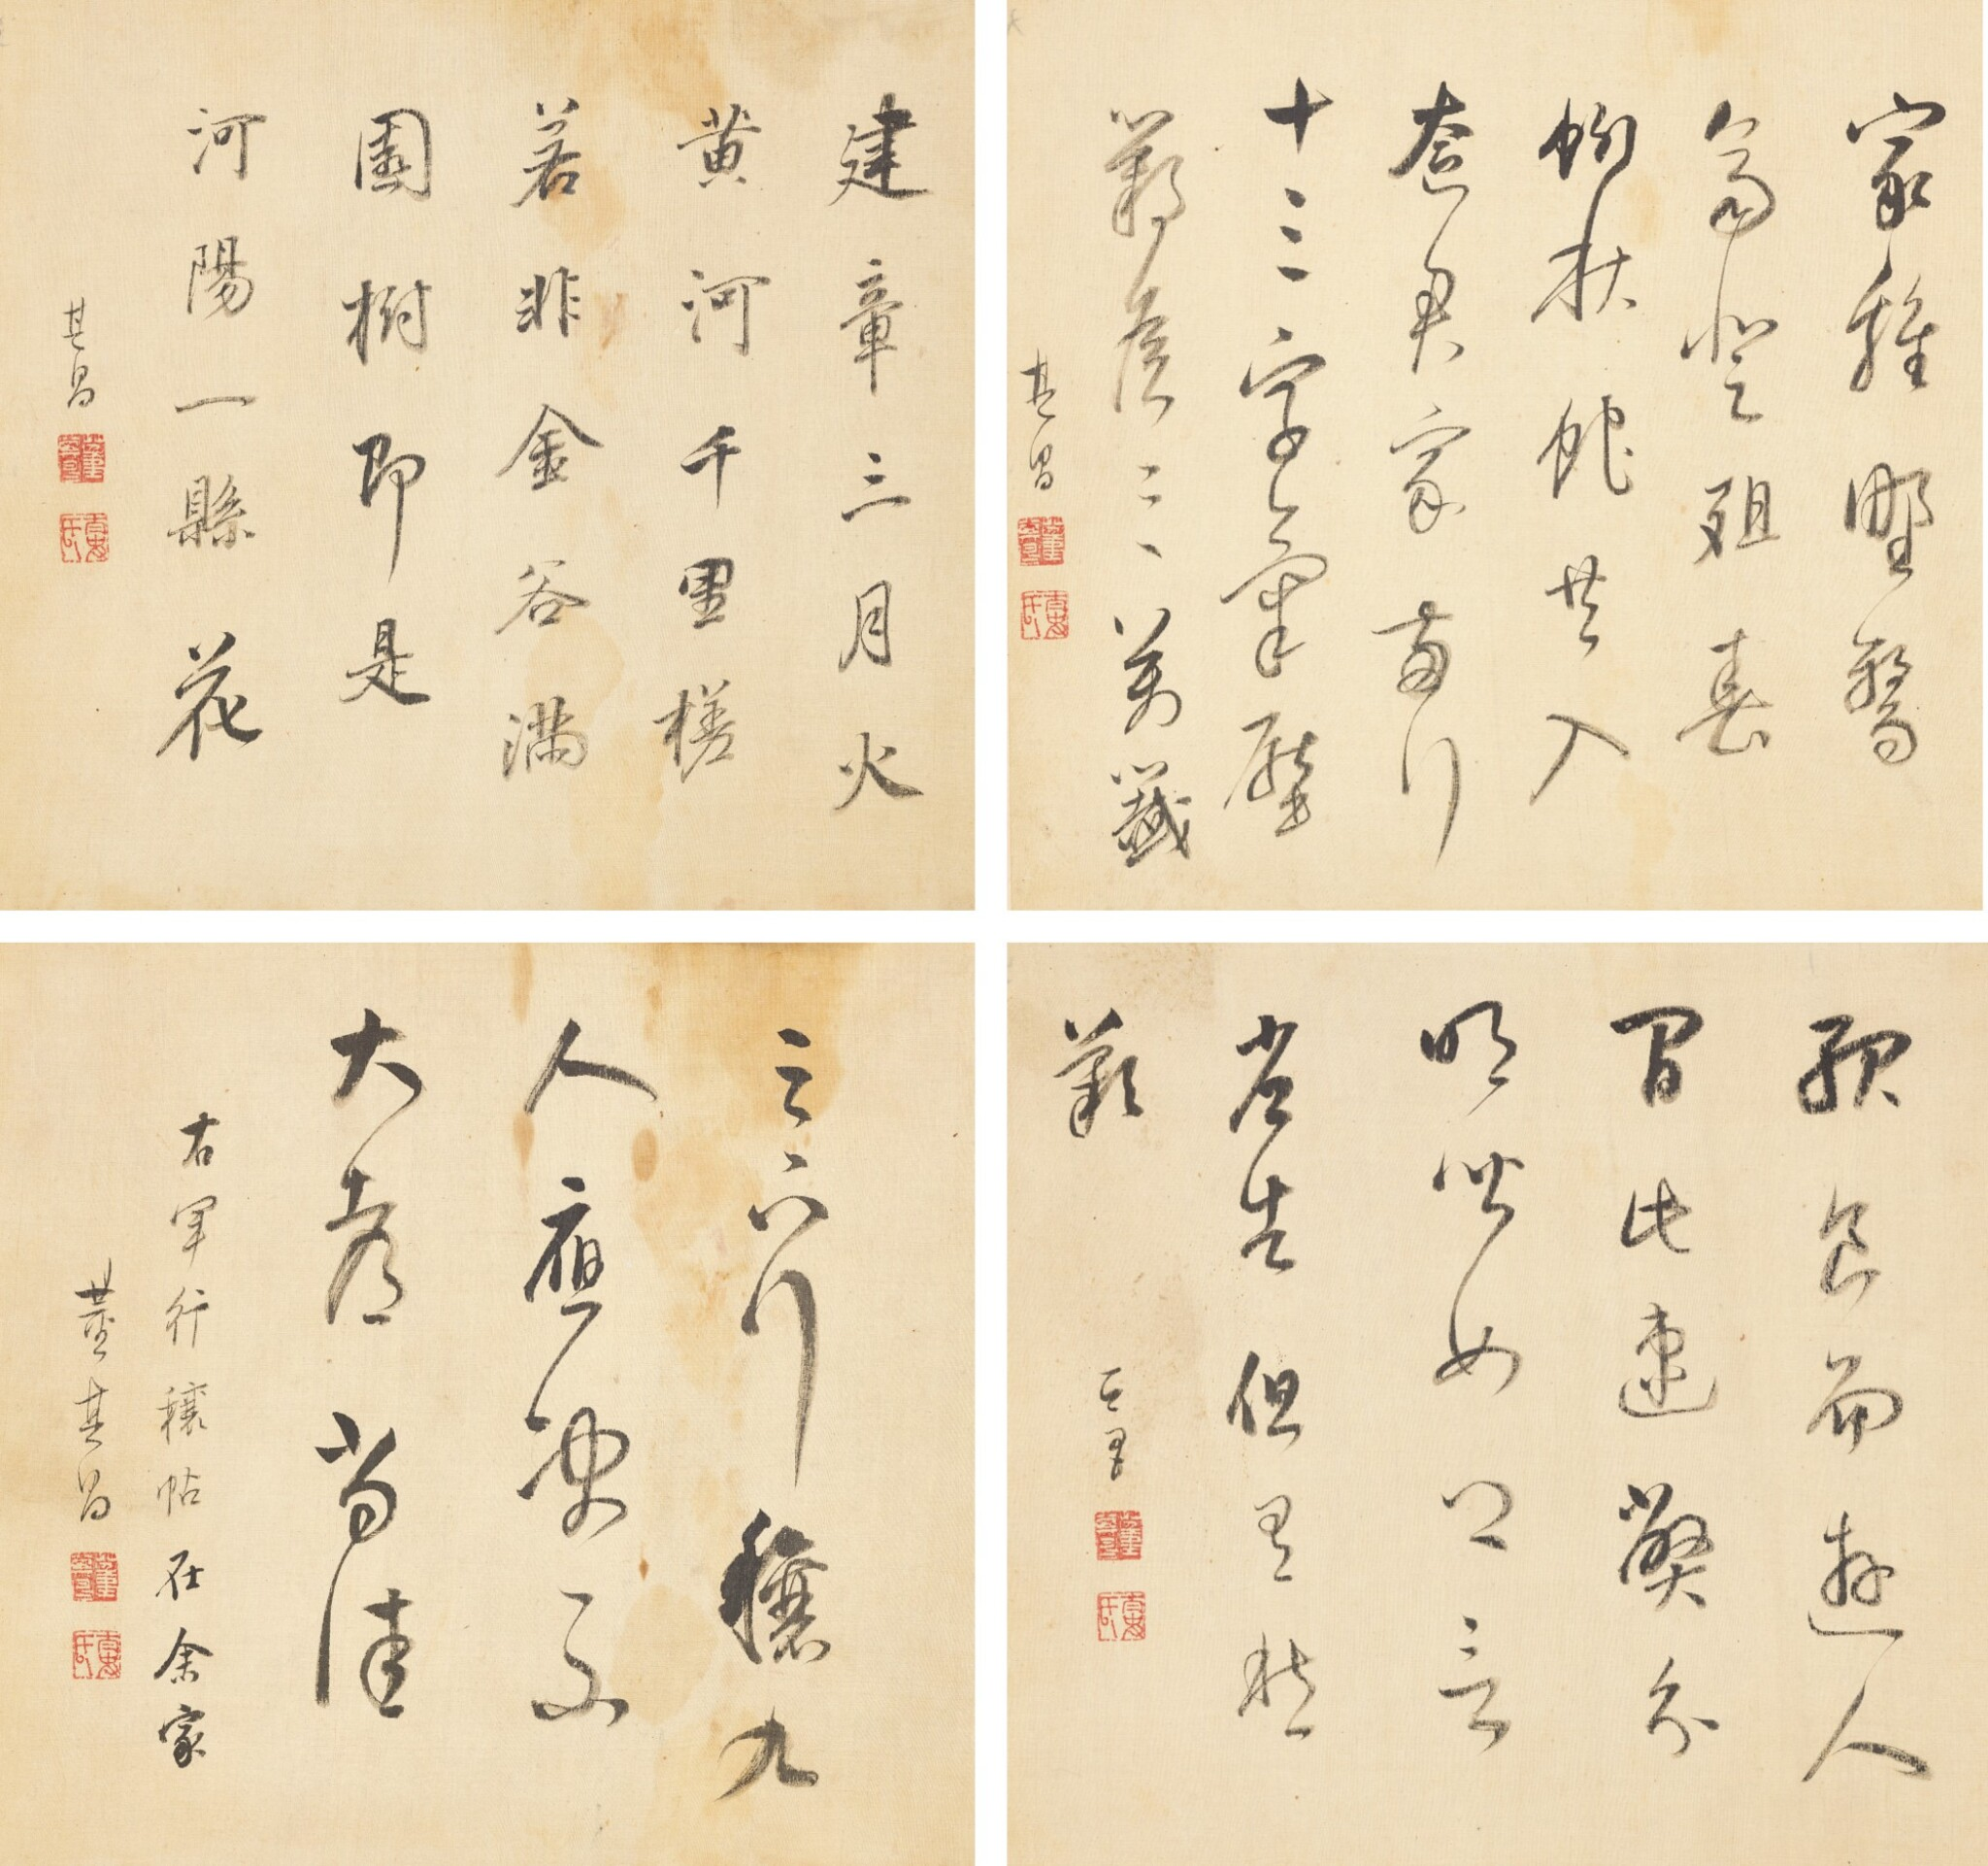 View full screen - View 1 of Lot 3062. Dong Qichang 1555 - 1636 董其昌 1555-1636   Calligraphy after Jin and Tang Masters 臨晉唐書帖.